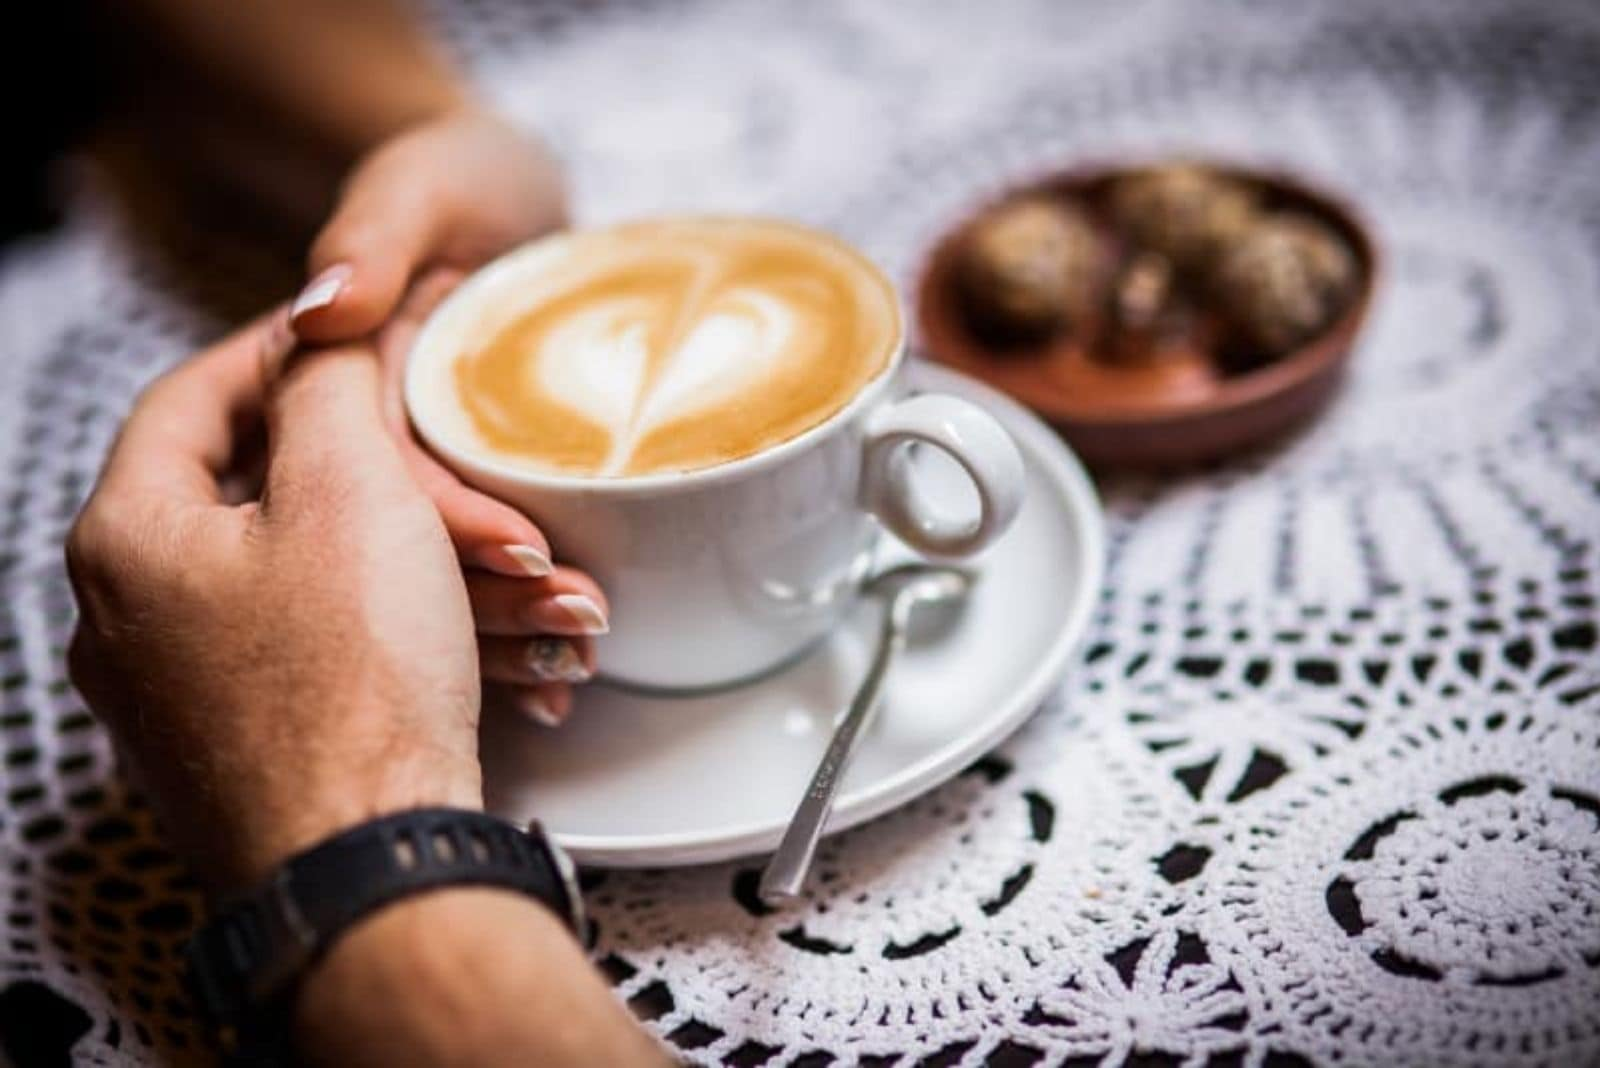 gently touch while drinking coffee